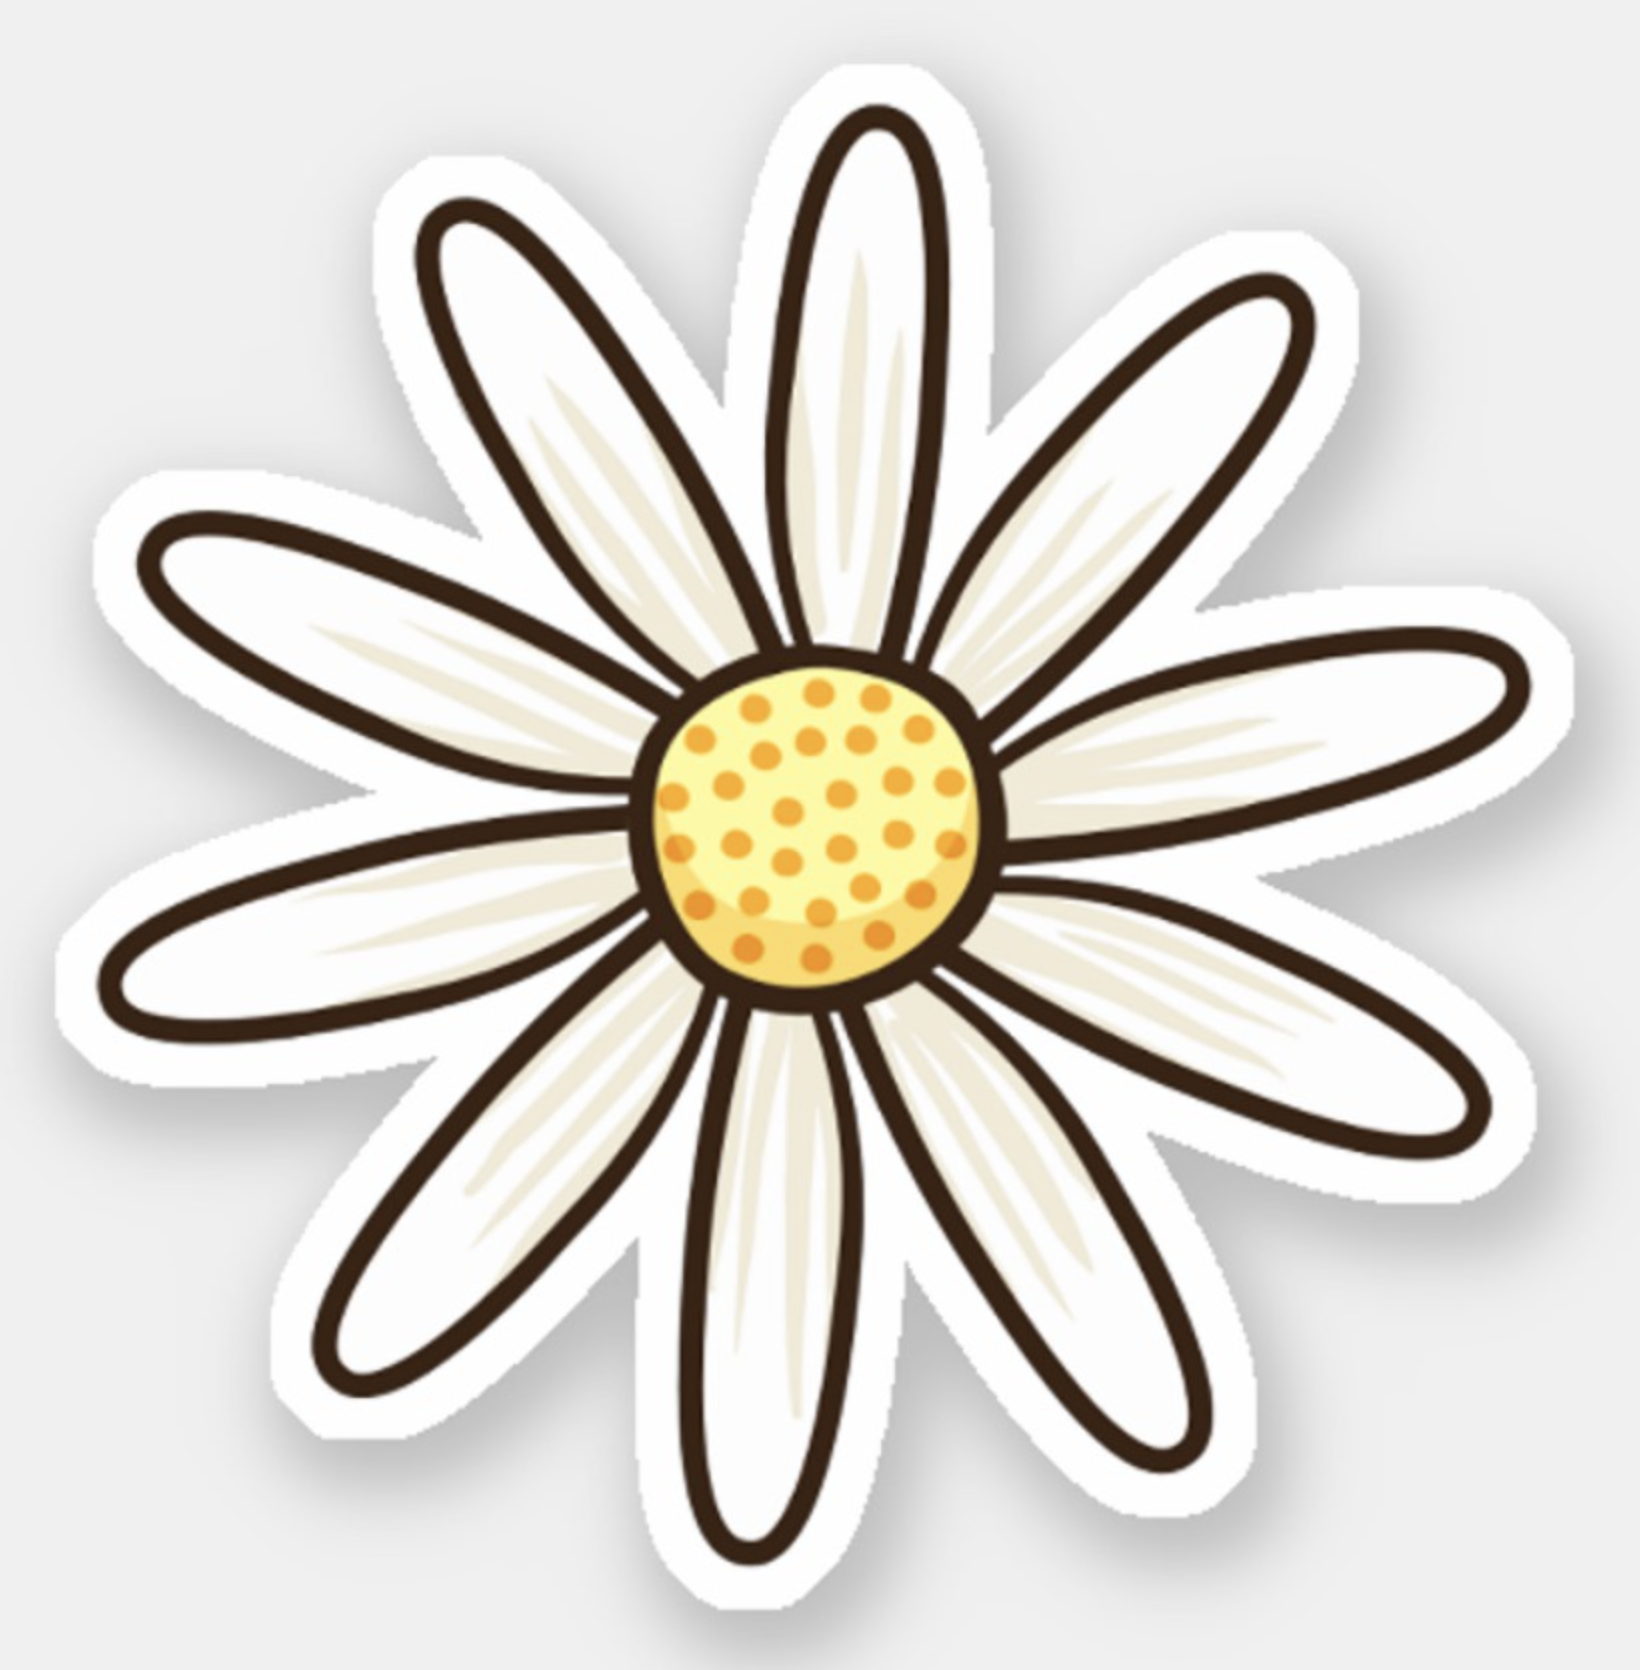 White daisy flower sticker zazzle com in 2019 pop